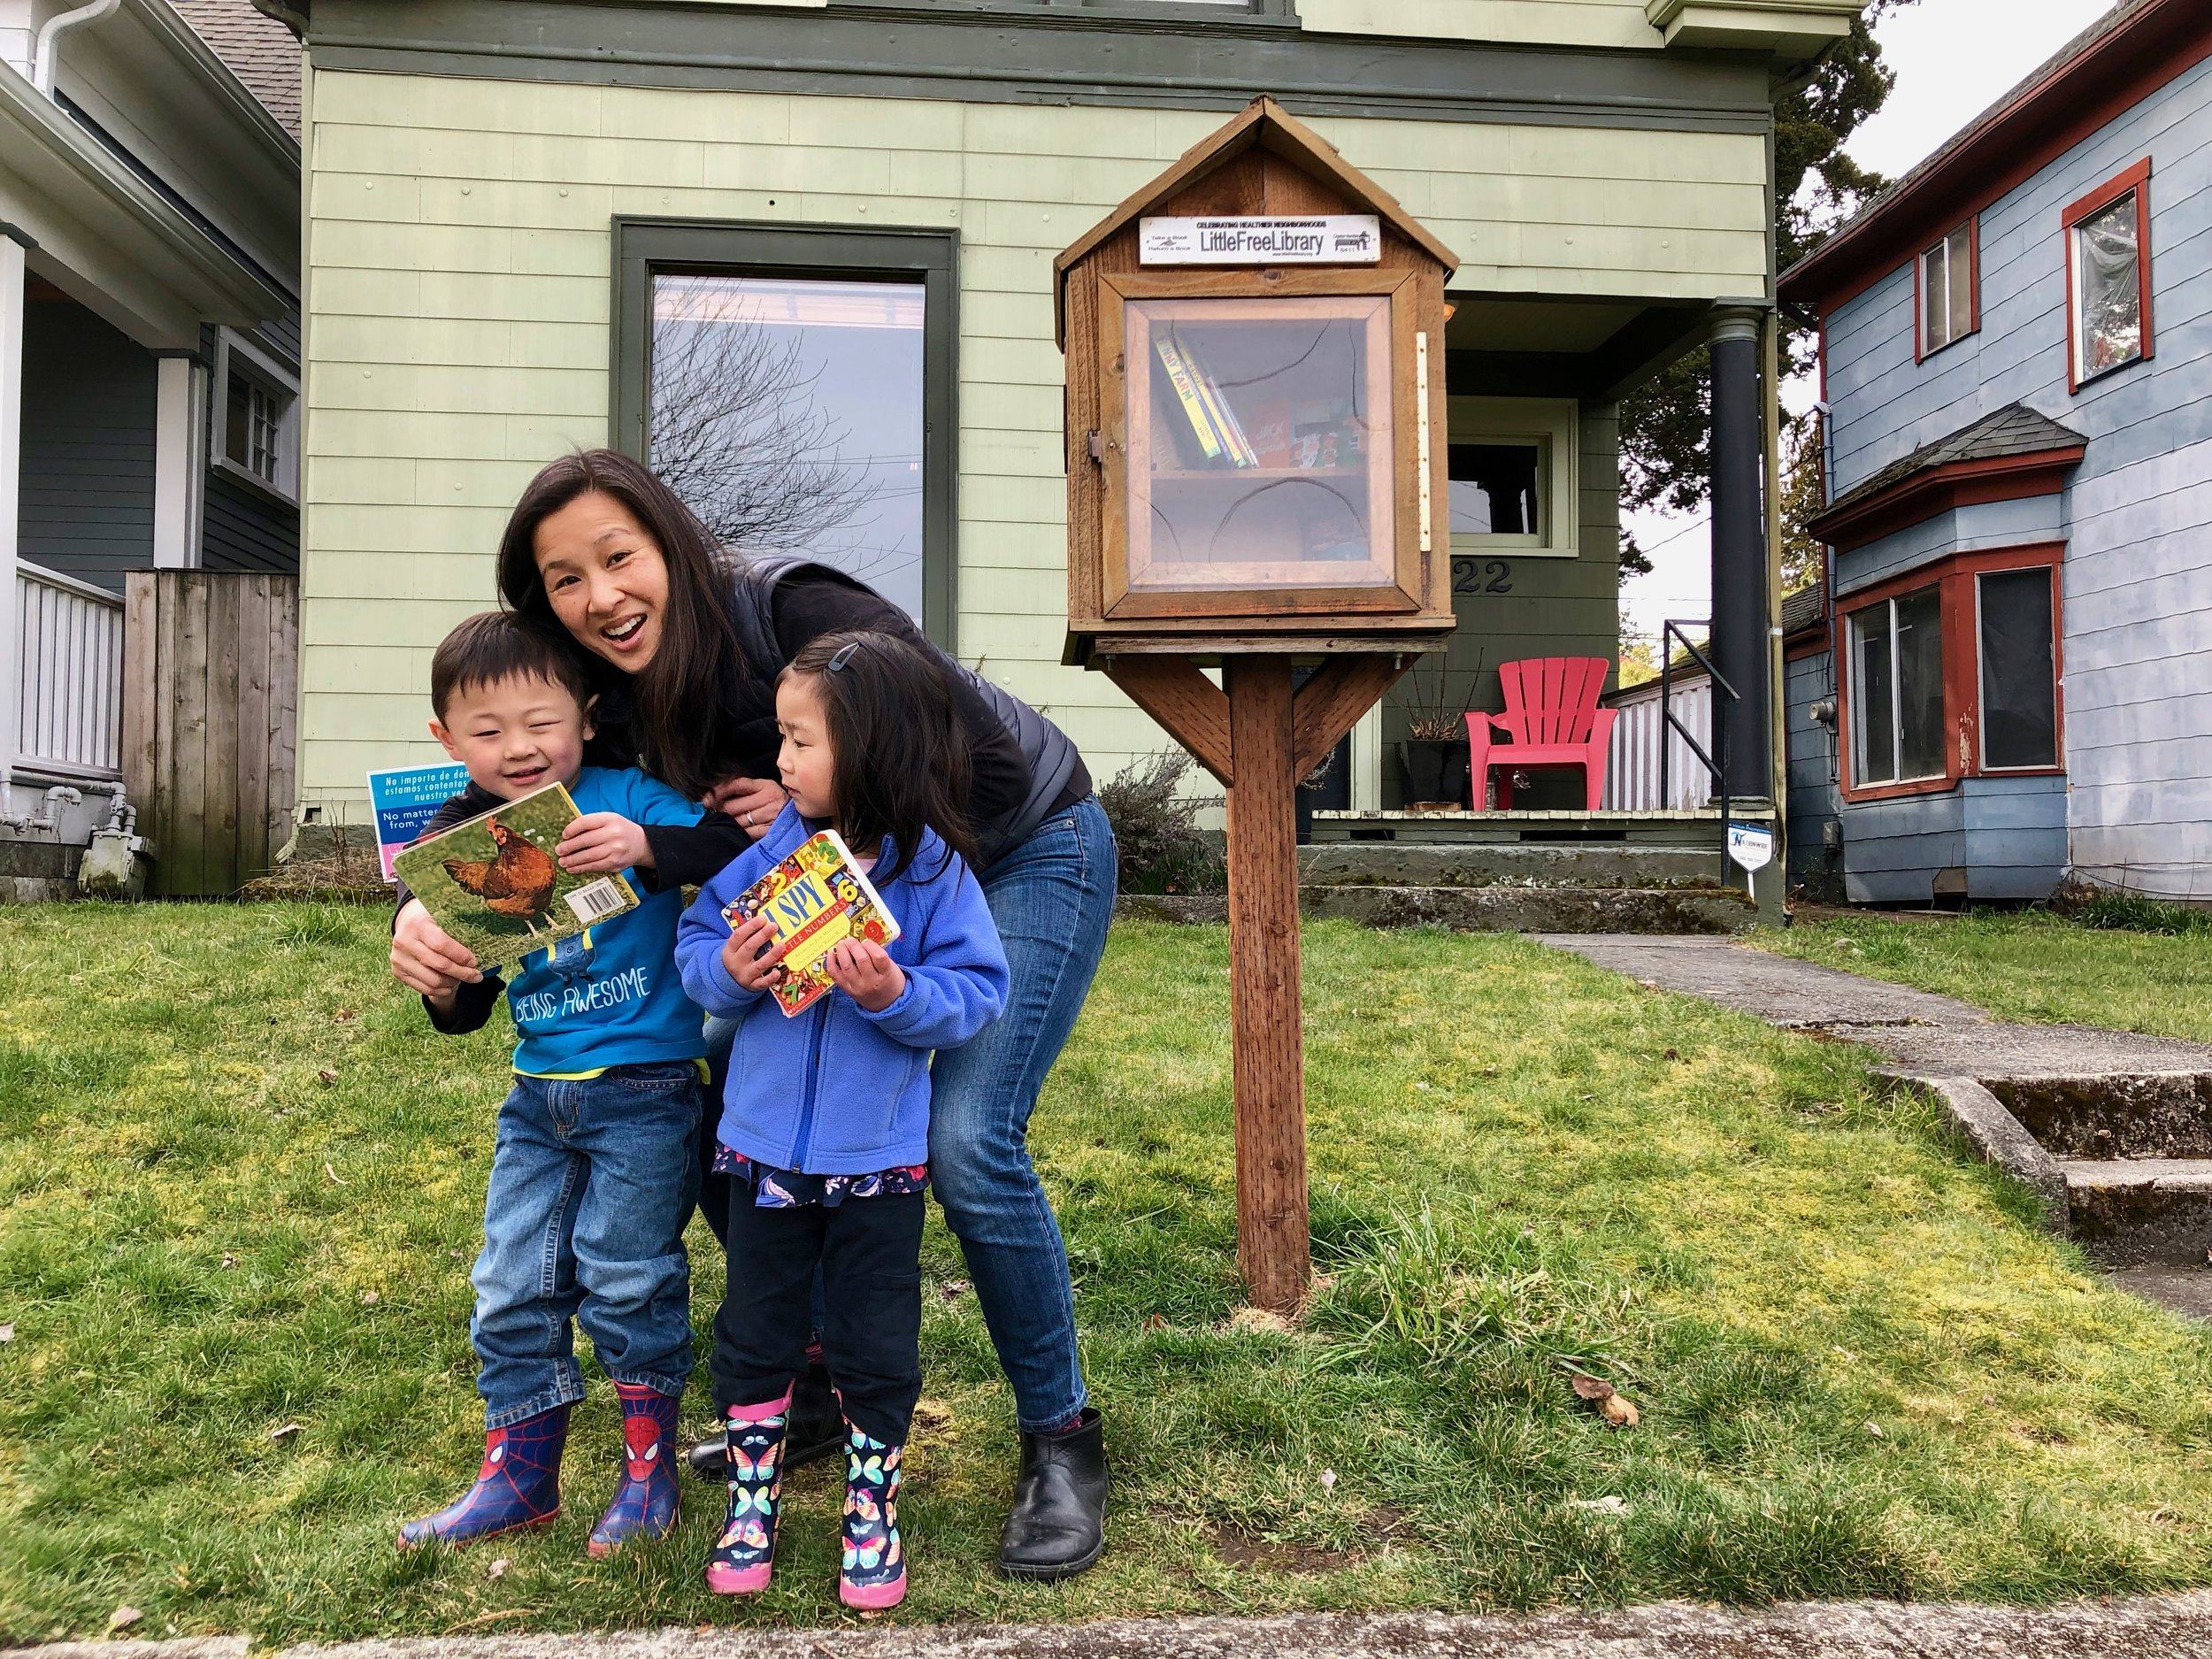 Meet Leigh Wong, proud Hilltop Tacoma resident and steward - along with her husband John Stroeh and their 2 kiddos - of the Cushman Branch Little Free Library. Leigh and the kids showed me some of the good books ready for readers in their neighborhood. Let's add to the stash!